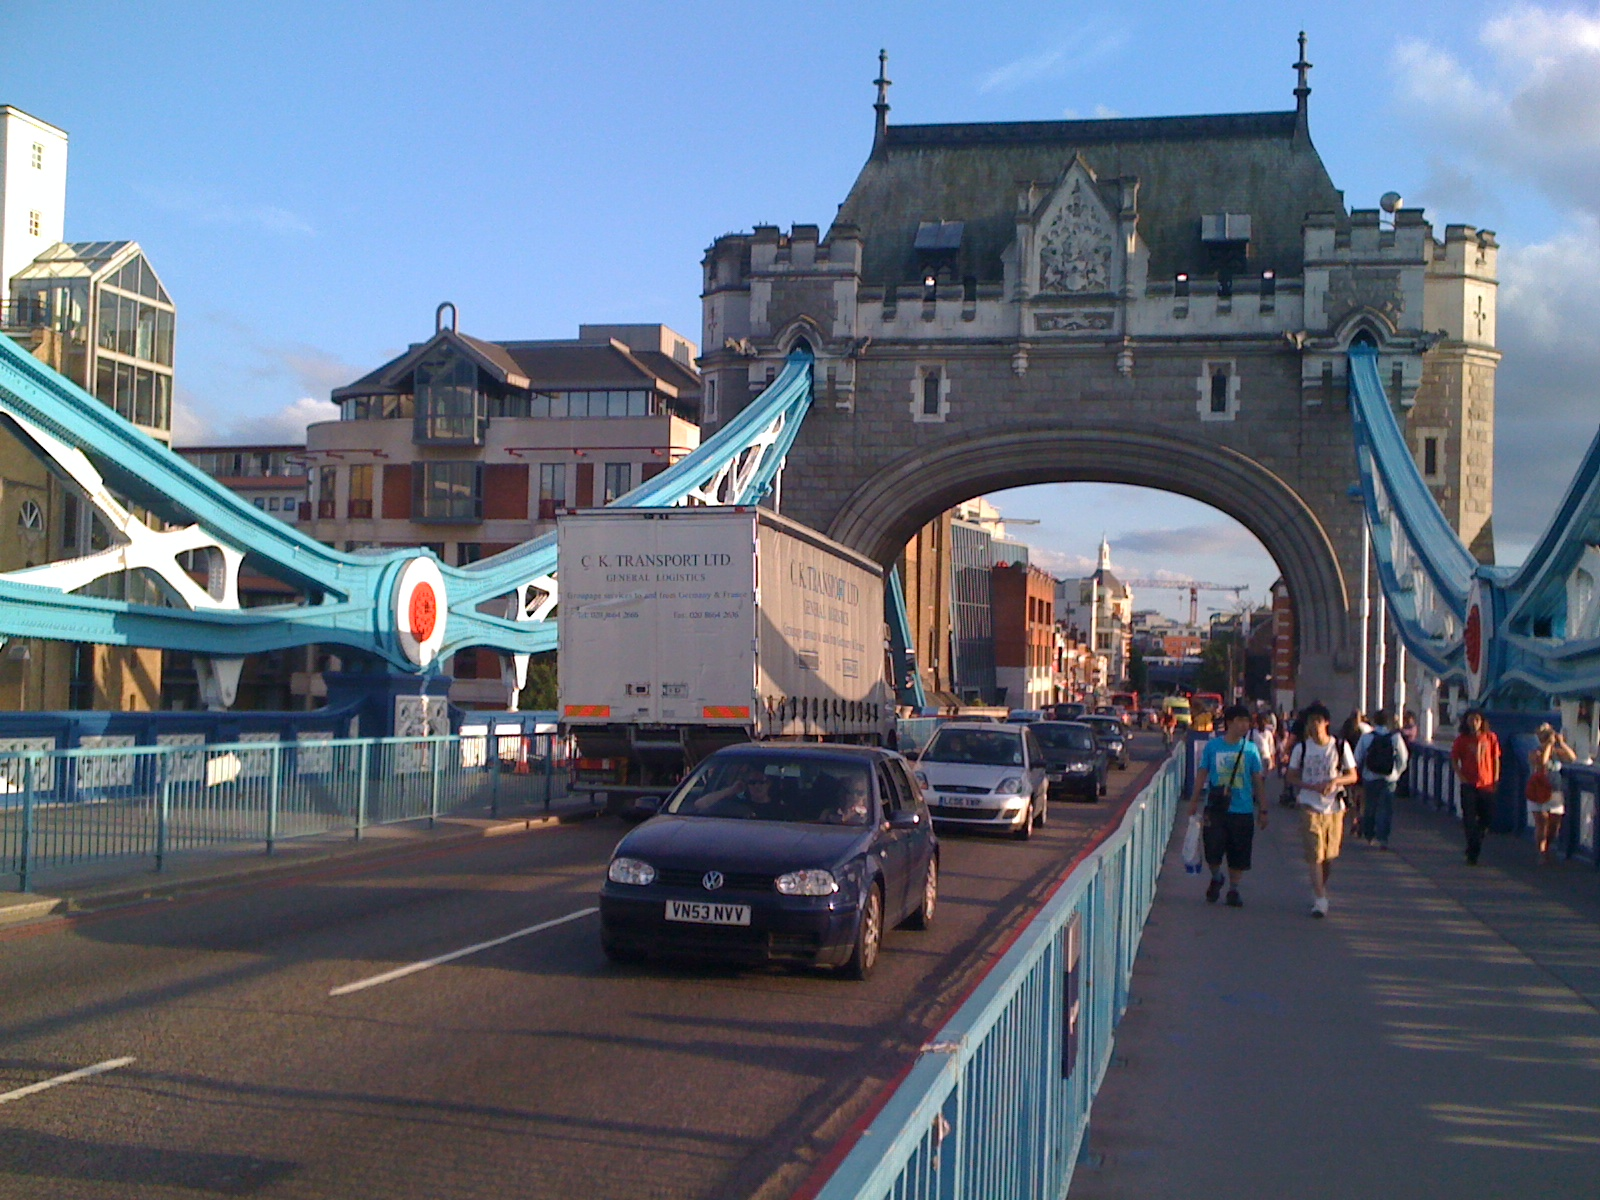 Tower Bridge, Bridge, Cars, Street, Structure, HQ Photo